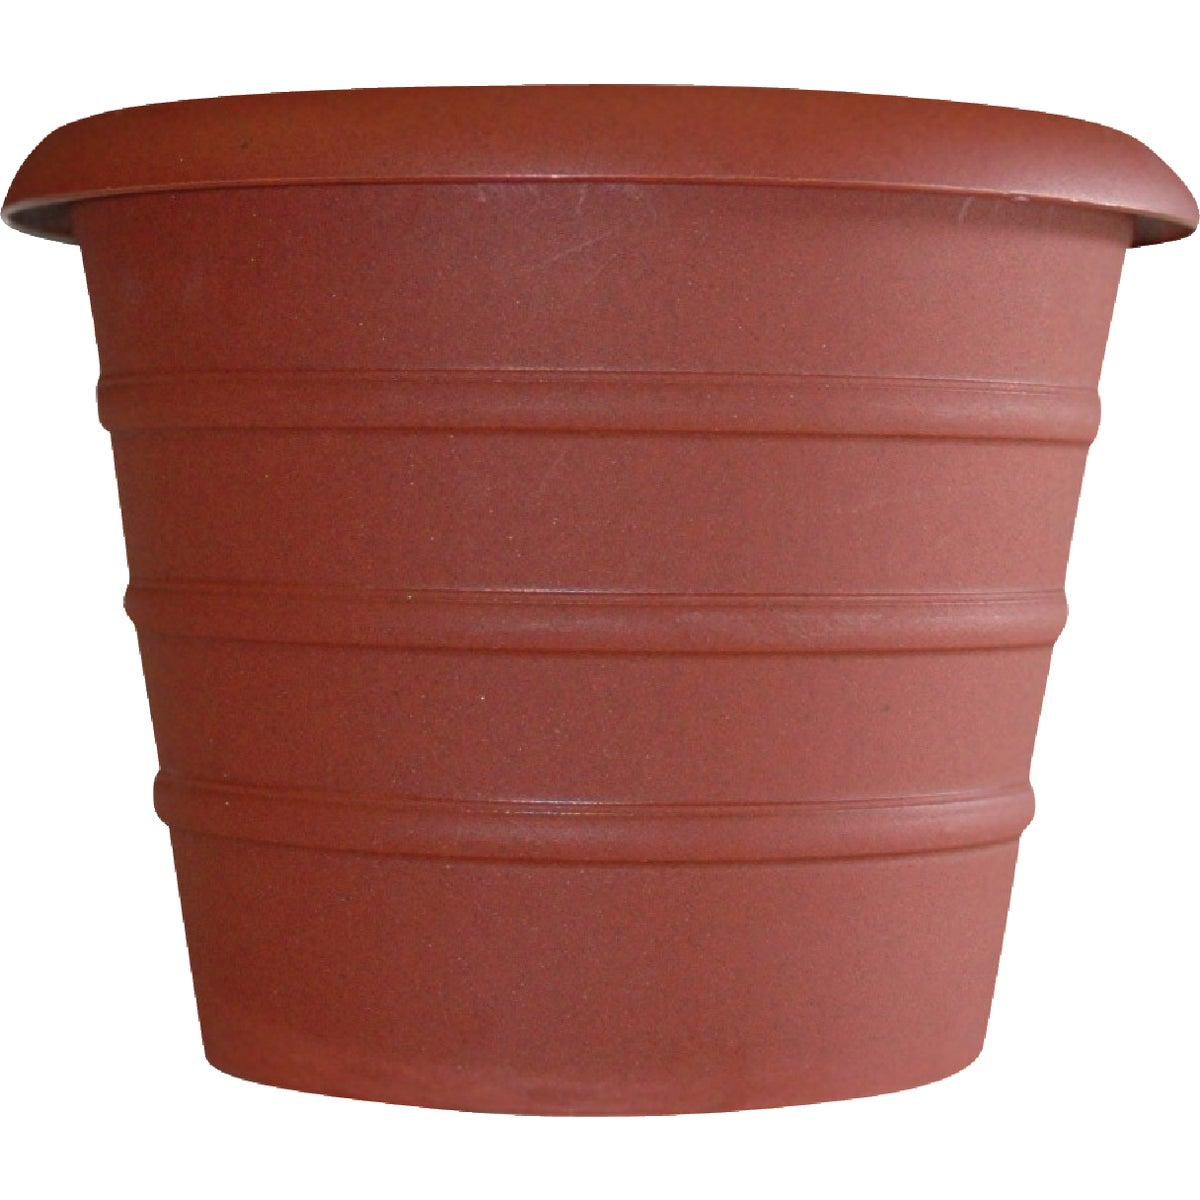 "8""T COTTA MARINA POT - MSA08001E07 by Myers Industries Inc"